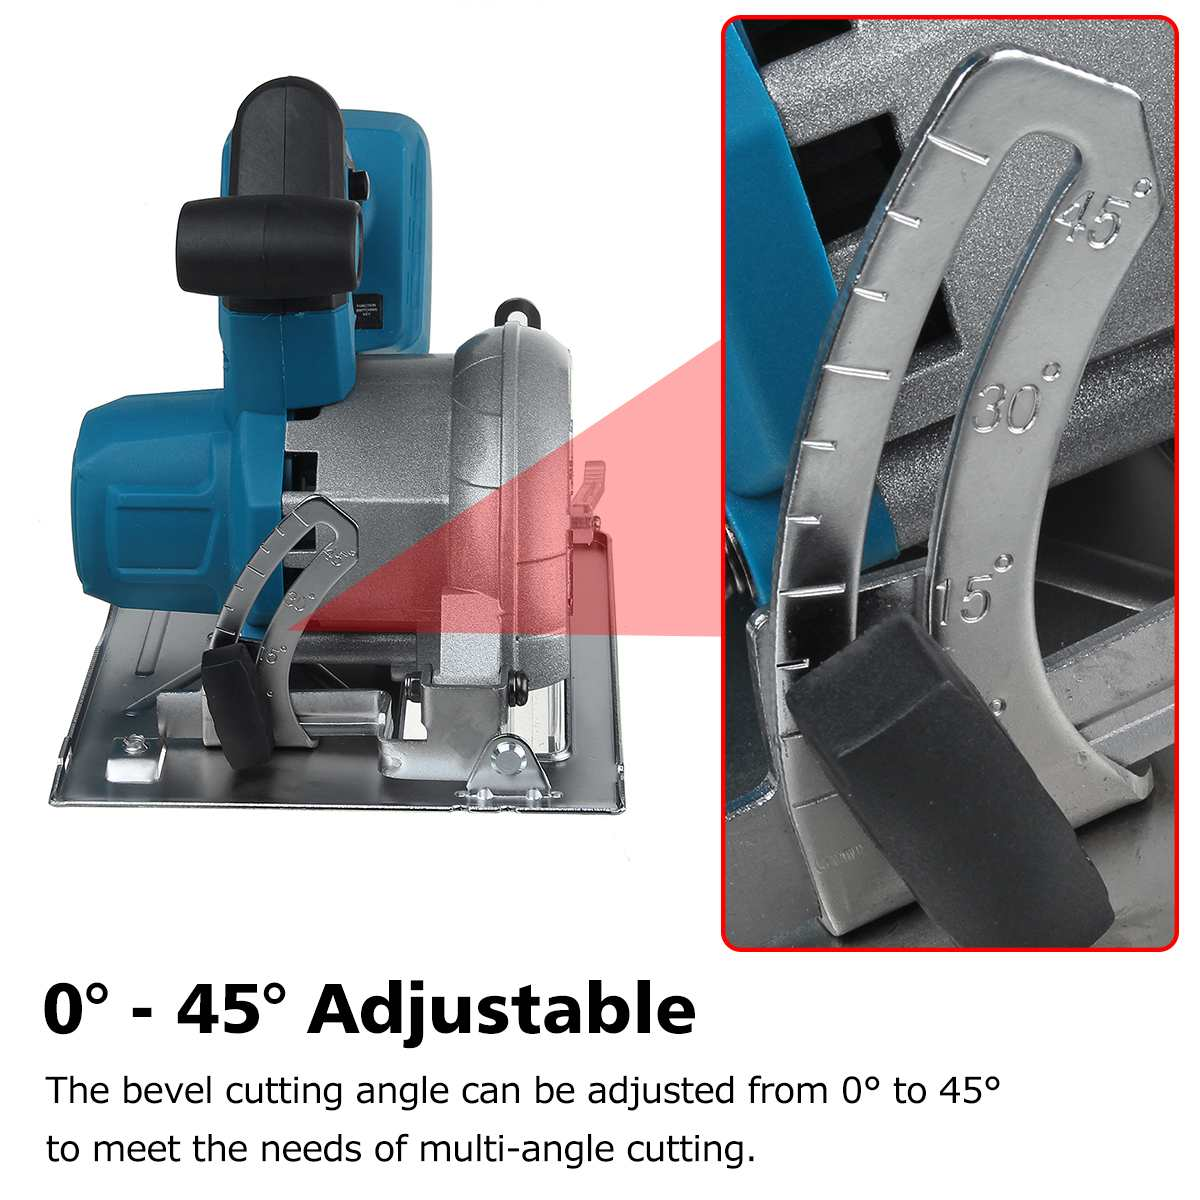 Tools : 10800RPM 125mm Cordless Electric Wood Circular Saw Power Tools Dust Passage Multifunction Cutting Machine For 18V Makita Battery